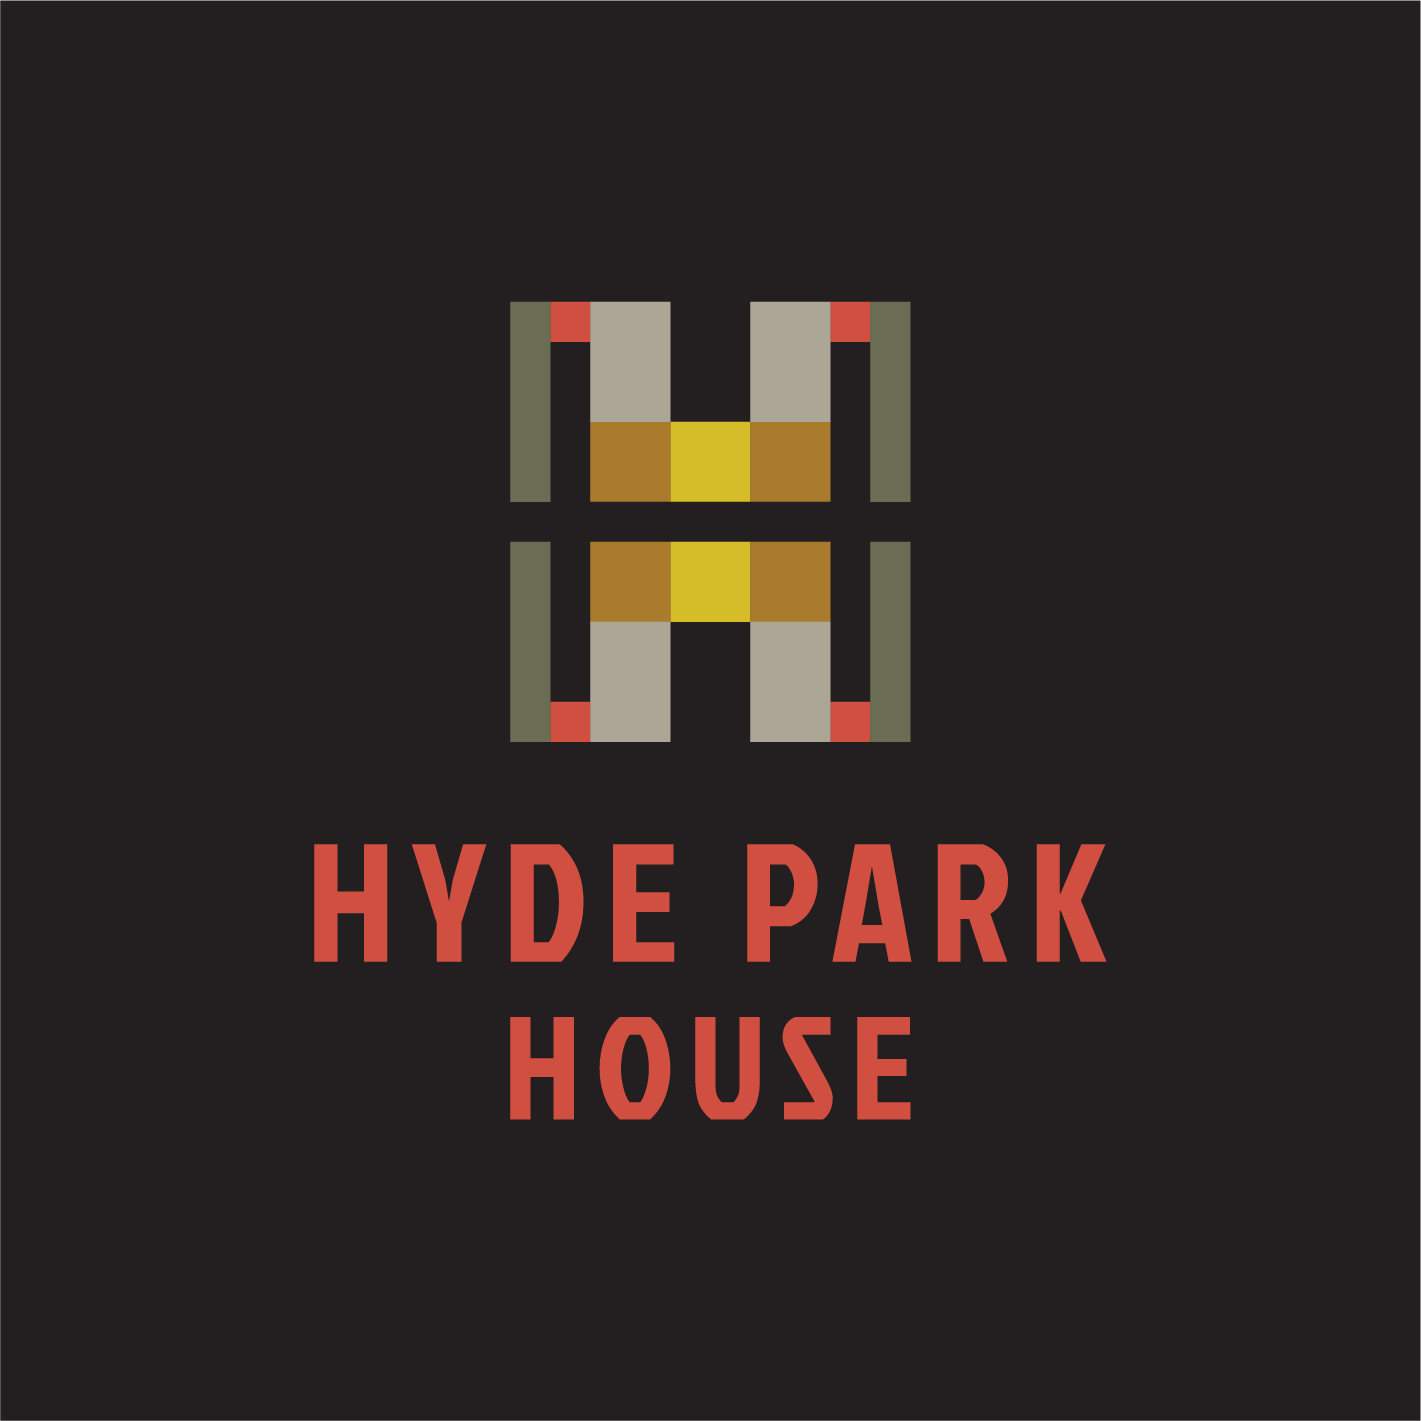 Hyde Park House logo